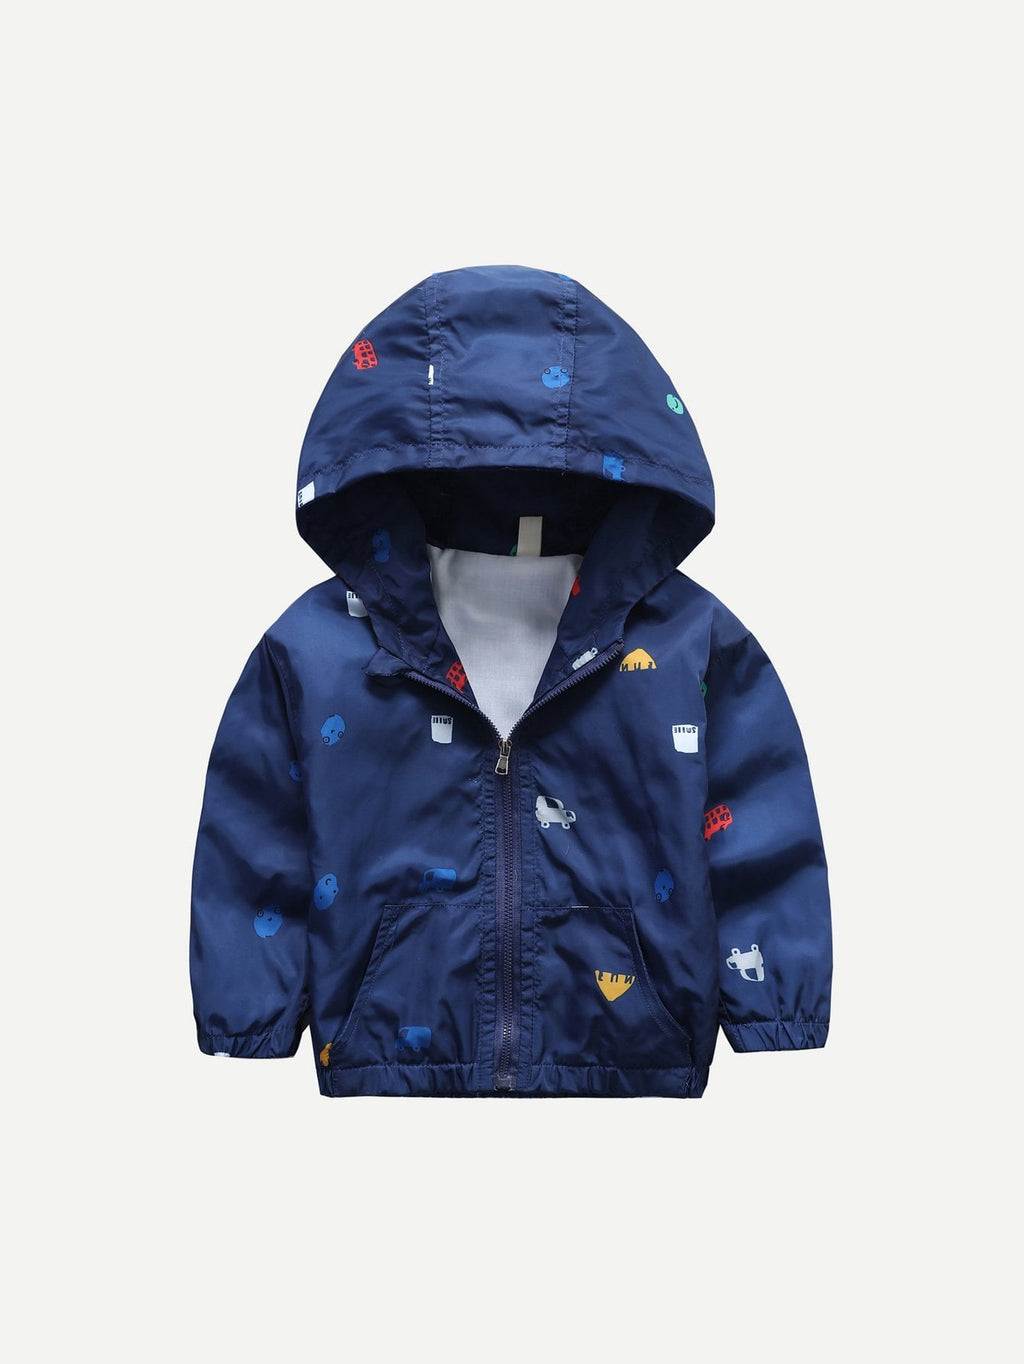 Toddler Boy Jackets - Car Print Hooded Jacket